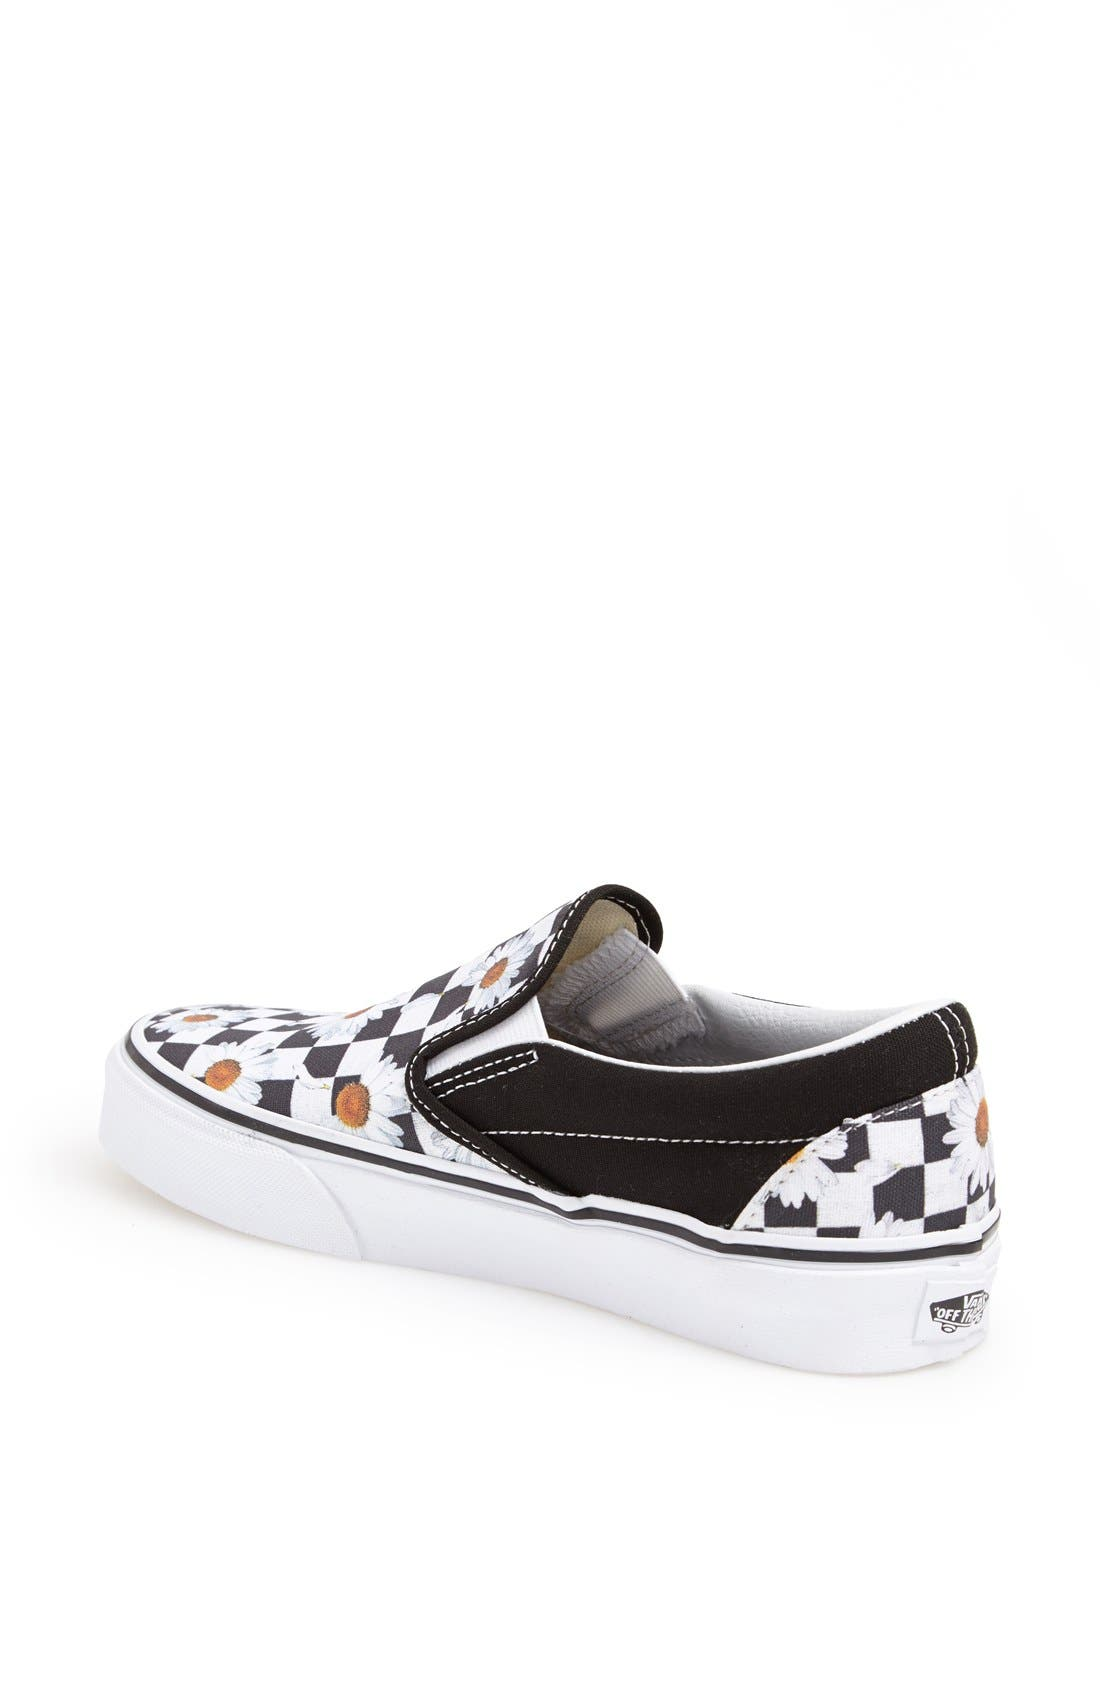 Alternate Image 2  - Vans 'He Loves Me, He Loves Me Not' Slip-On Sneaker (Women)